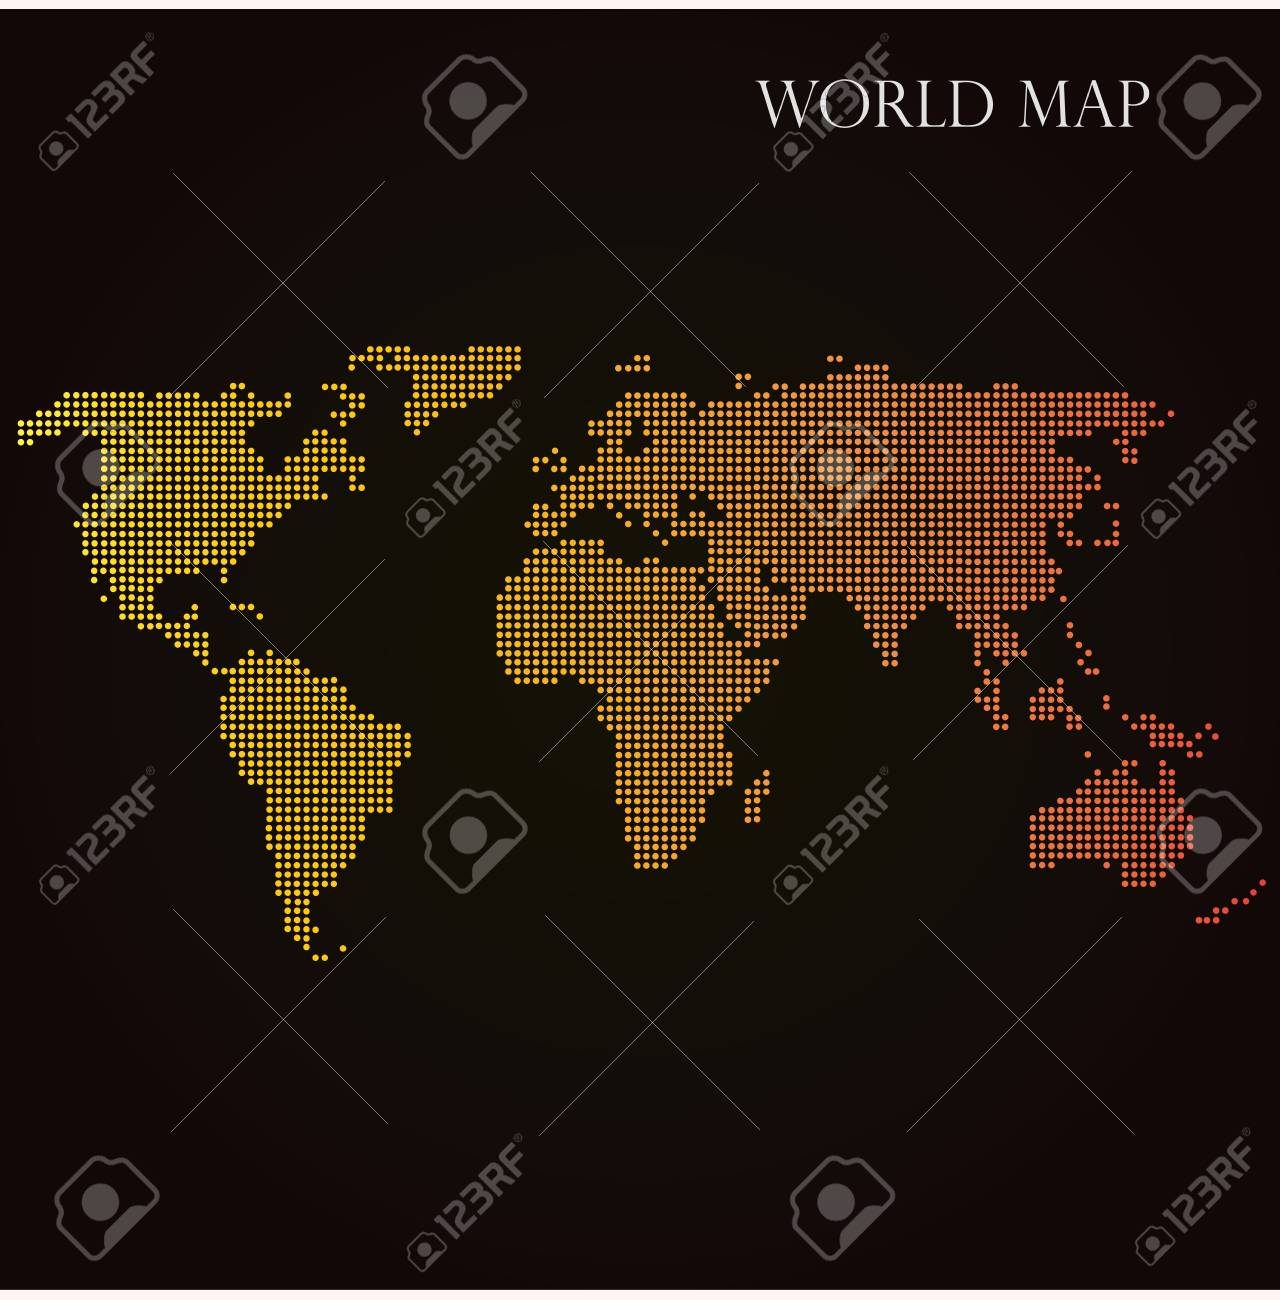 Halftone dotted world map with orange gradient overlay vector halftone dotted world map with orange gradient overlay vector illustration stock vector 77621278 gumiabroncs Image collections